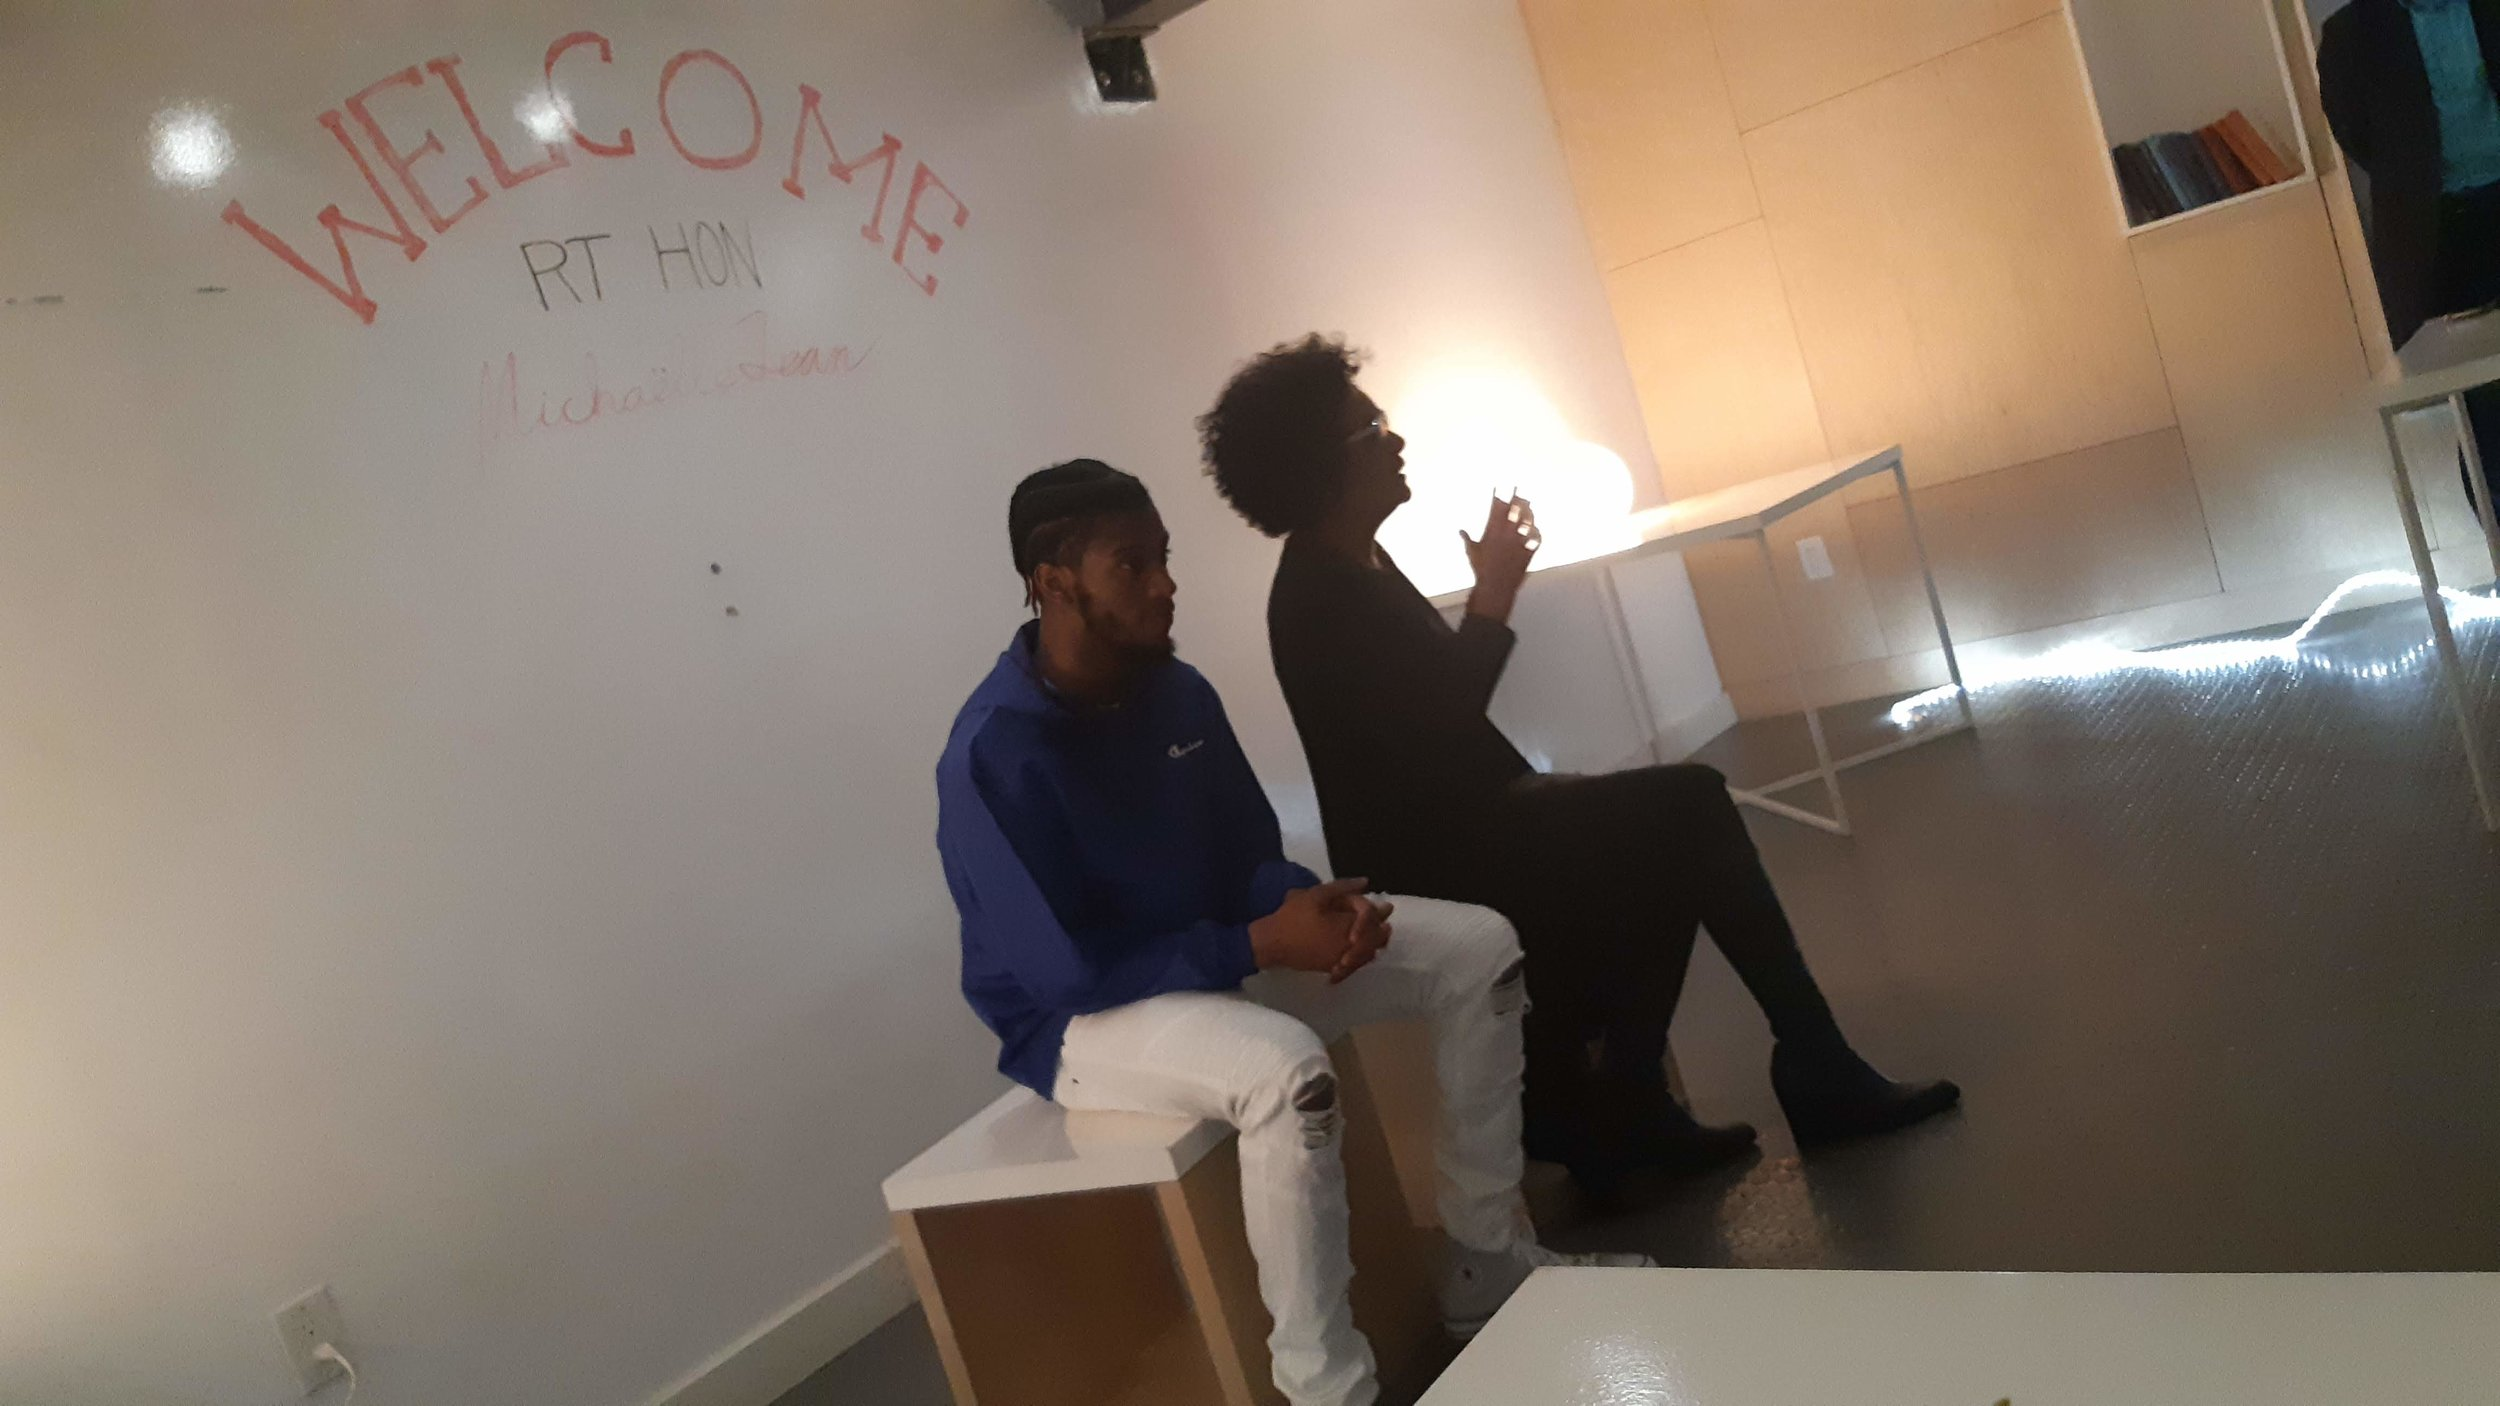 MAJE, HUBHFX facilitator & hip hop artist, helped welcome Mme Jean and host the conversation